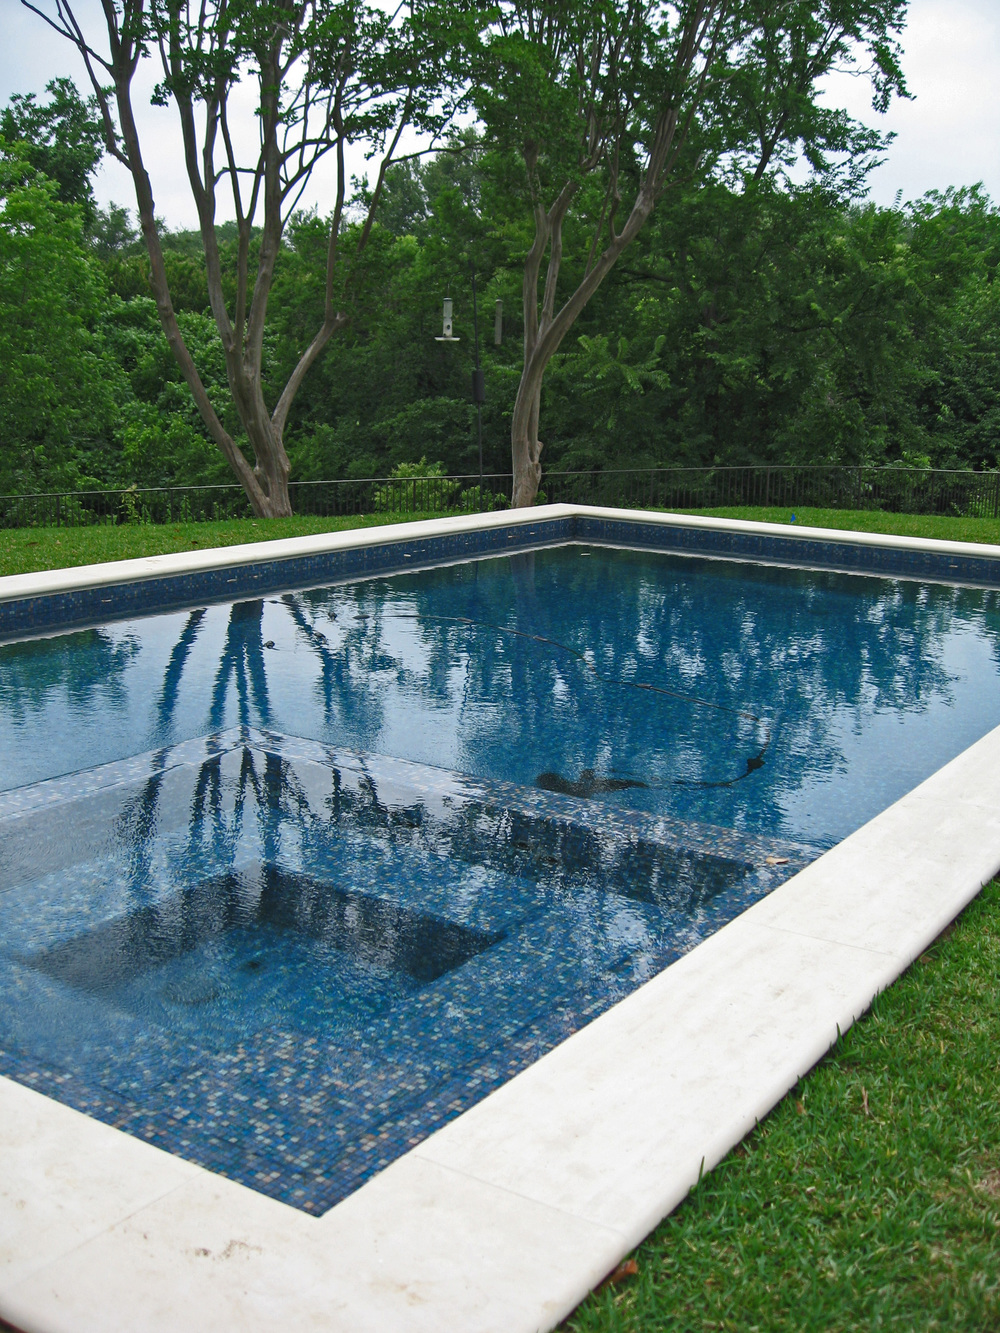 tile pool & spa.jpg